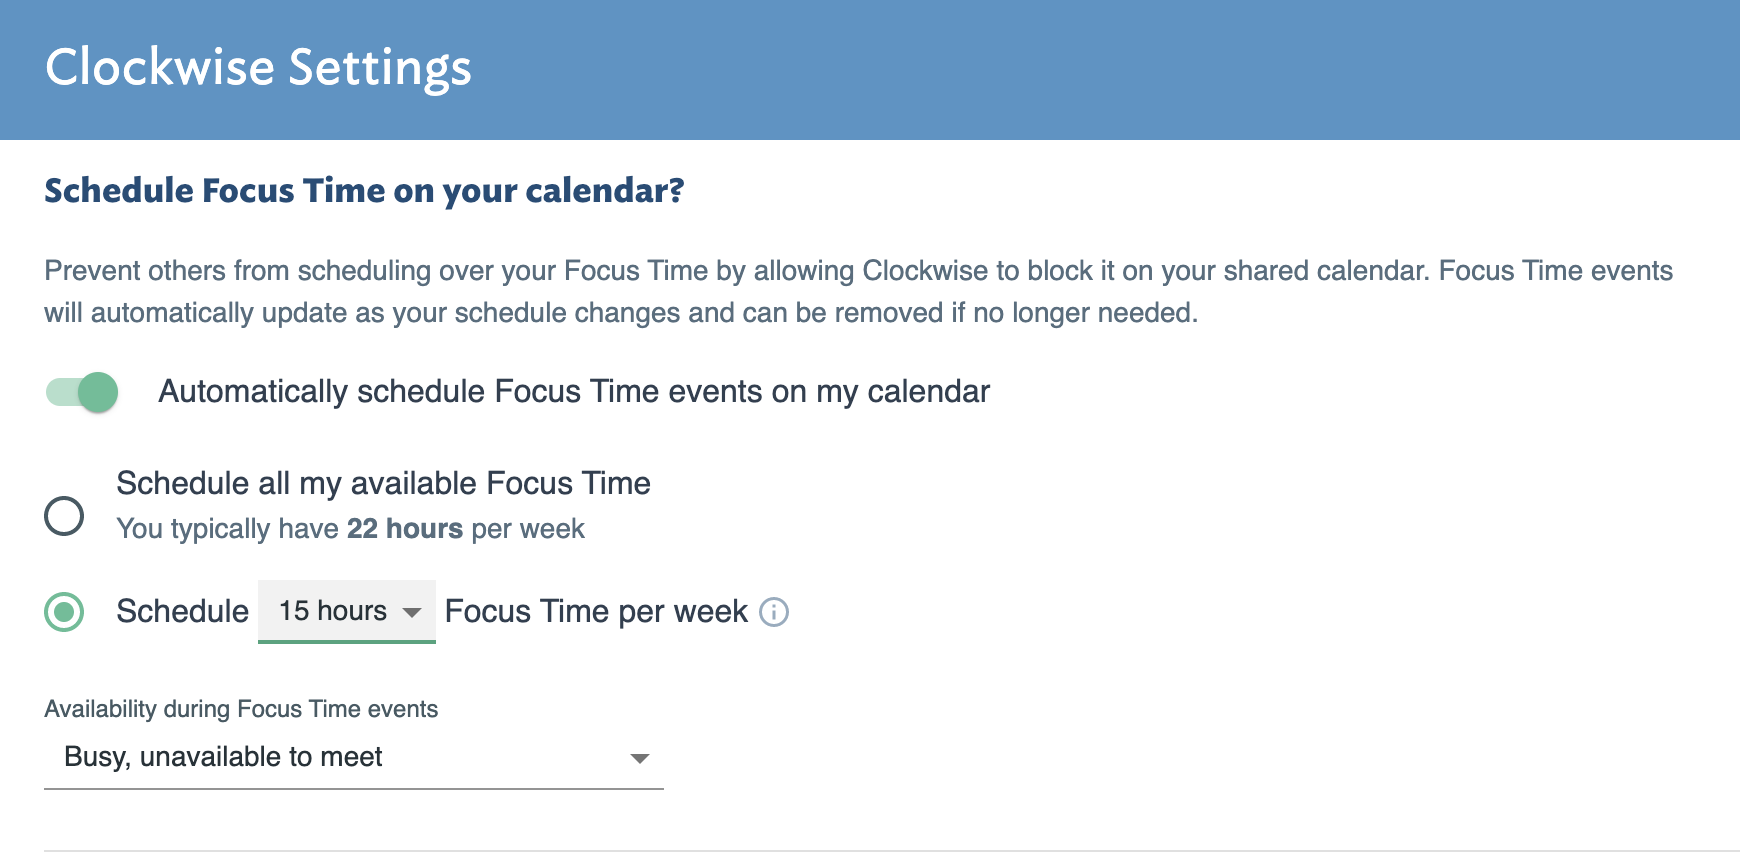 Focus_Time_weekly_goals.png